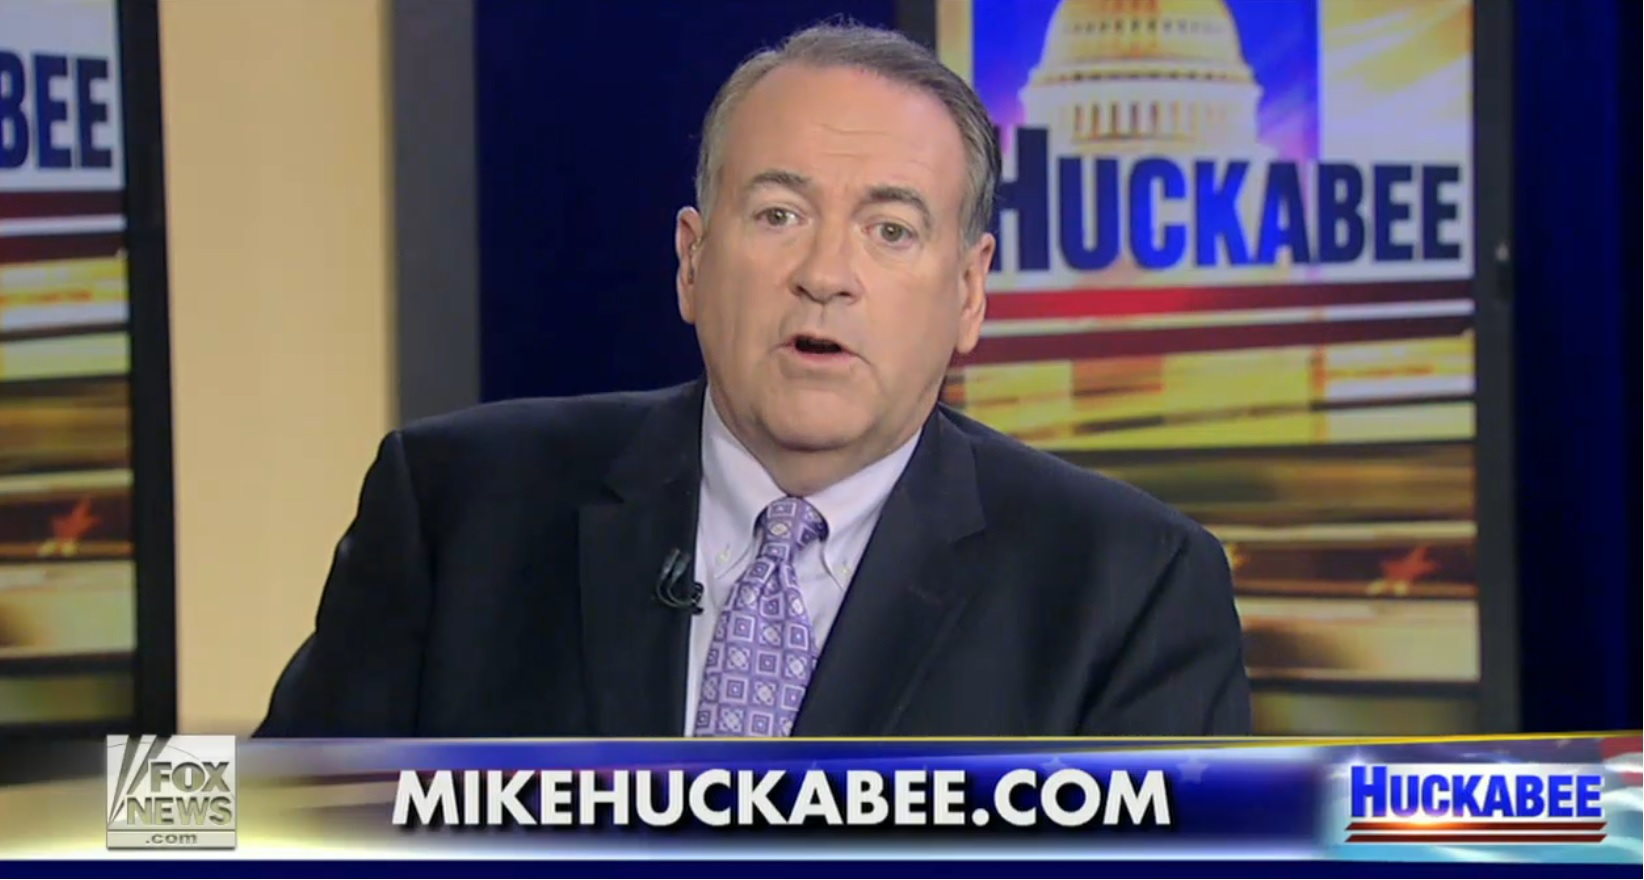 Mike Huckabee Sold Out His Fans To A Quack Doctor, Conspiracy Theorists, And Financial Fraudsters